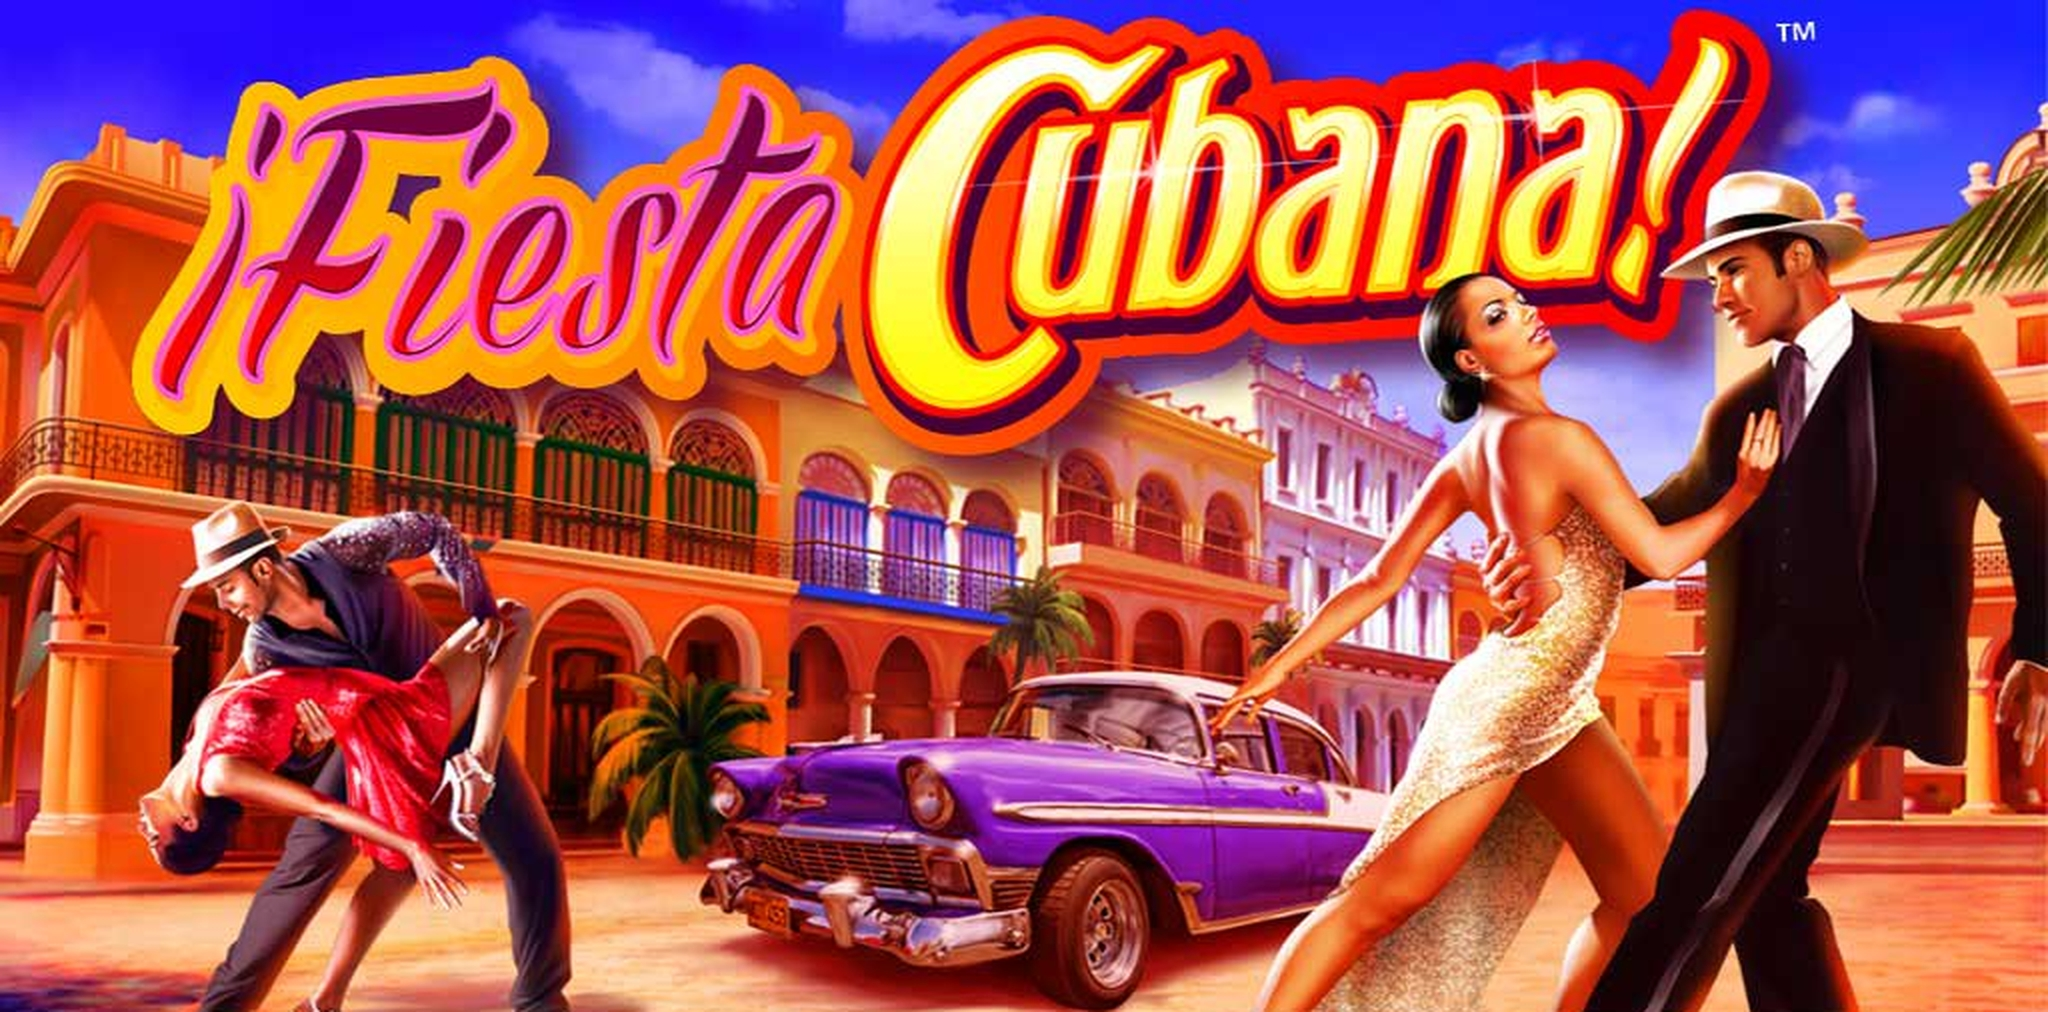 The Fiesta Cubana Online Slot Demo Game by Side City